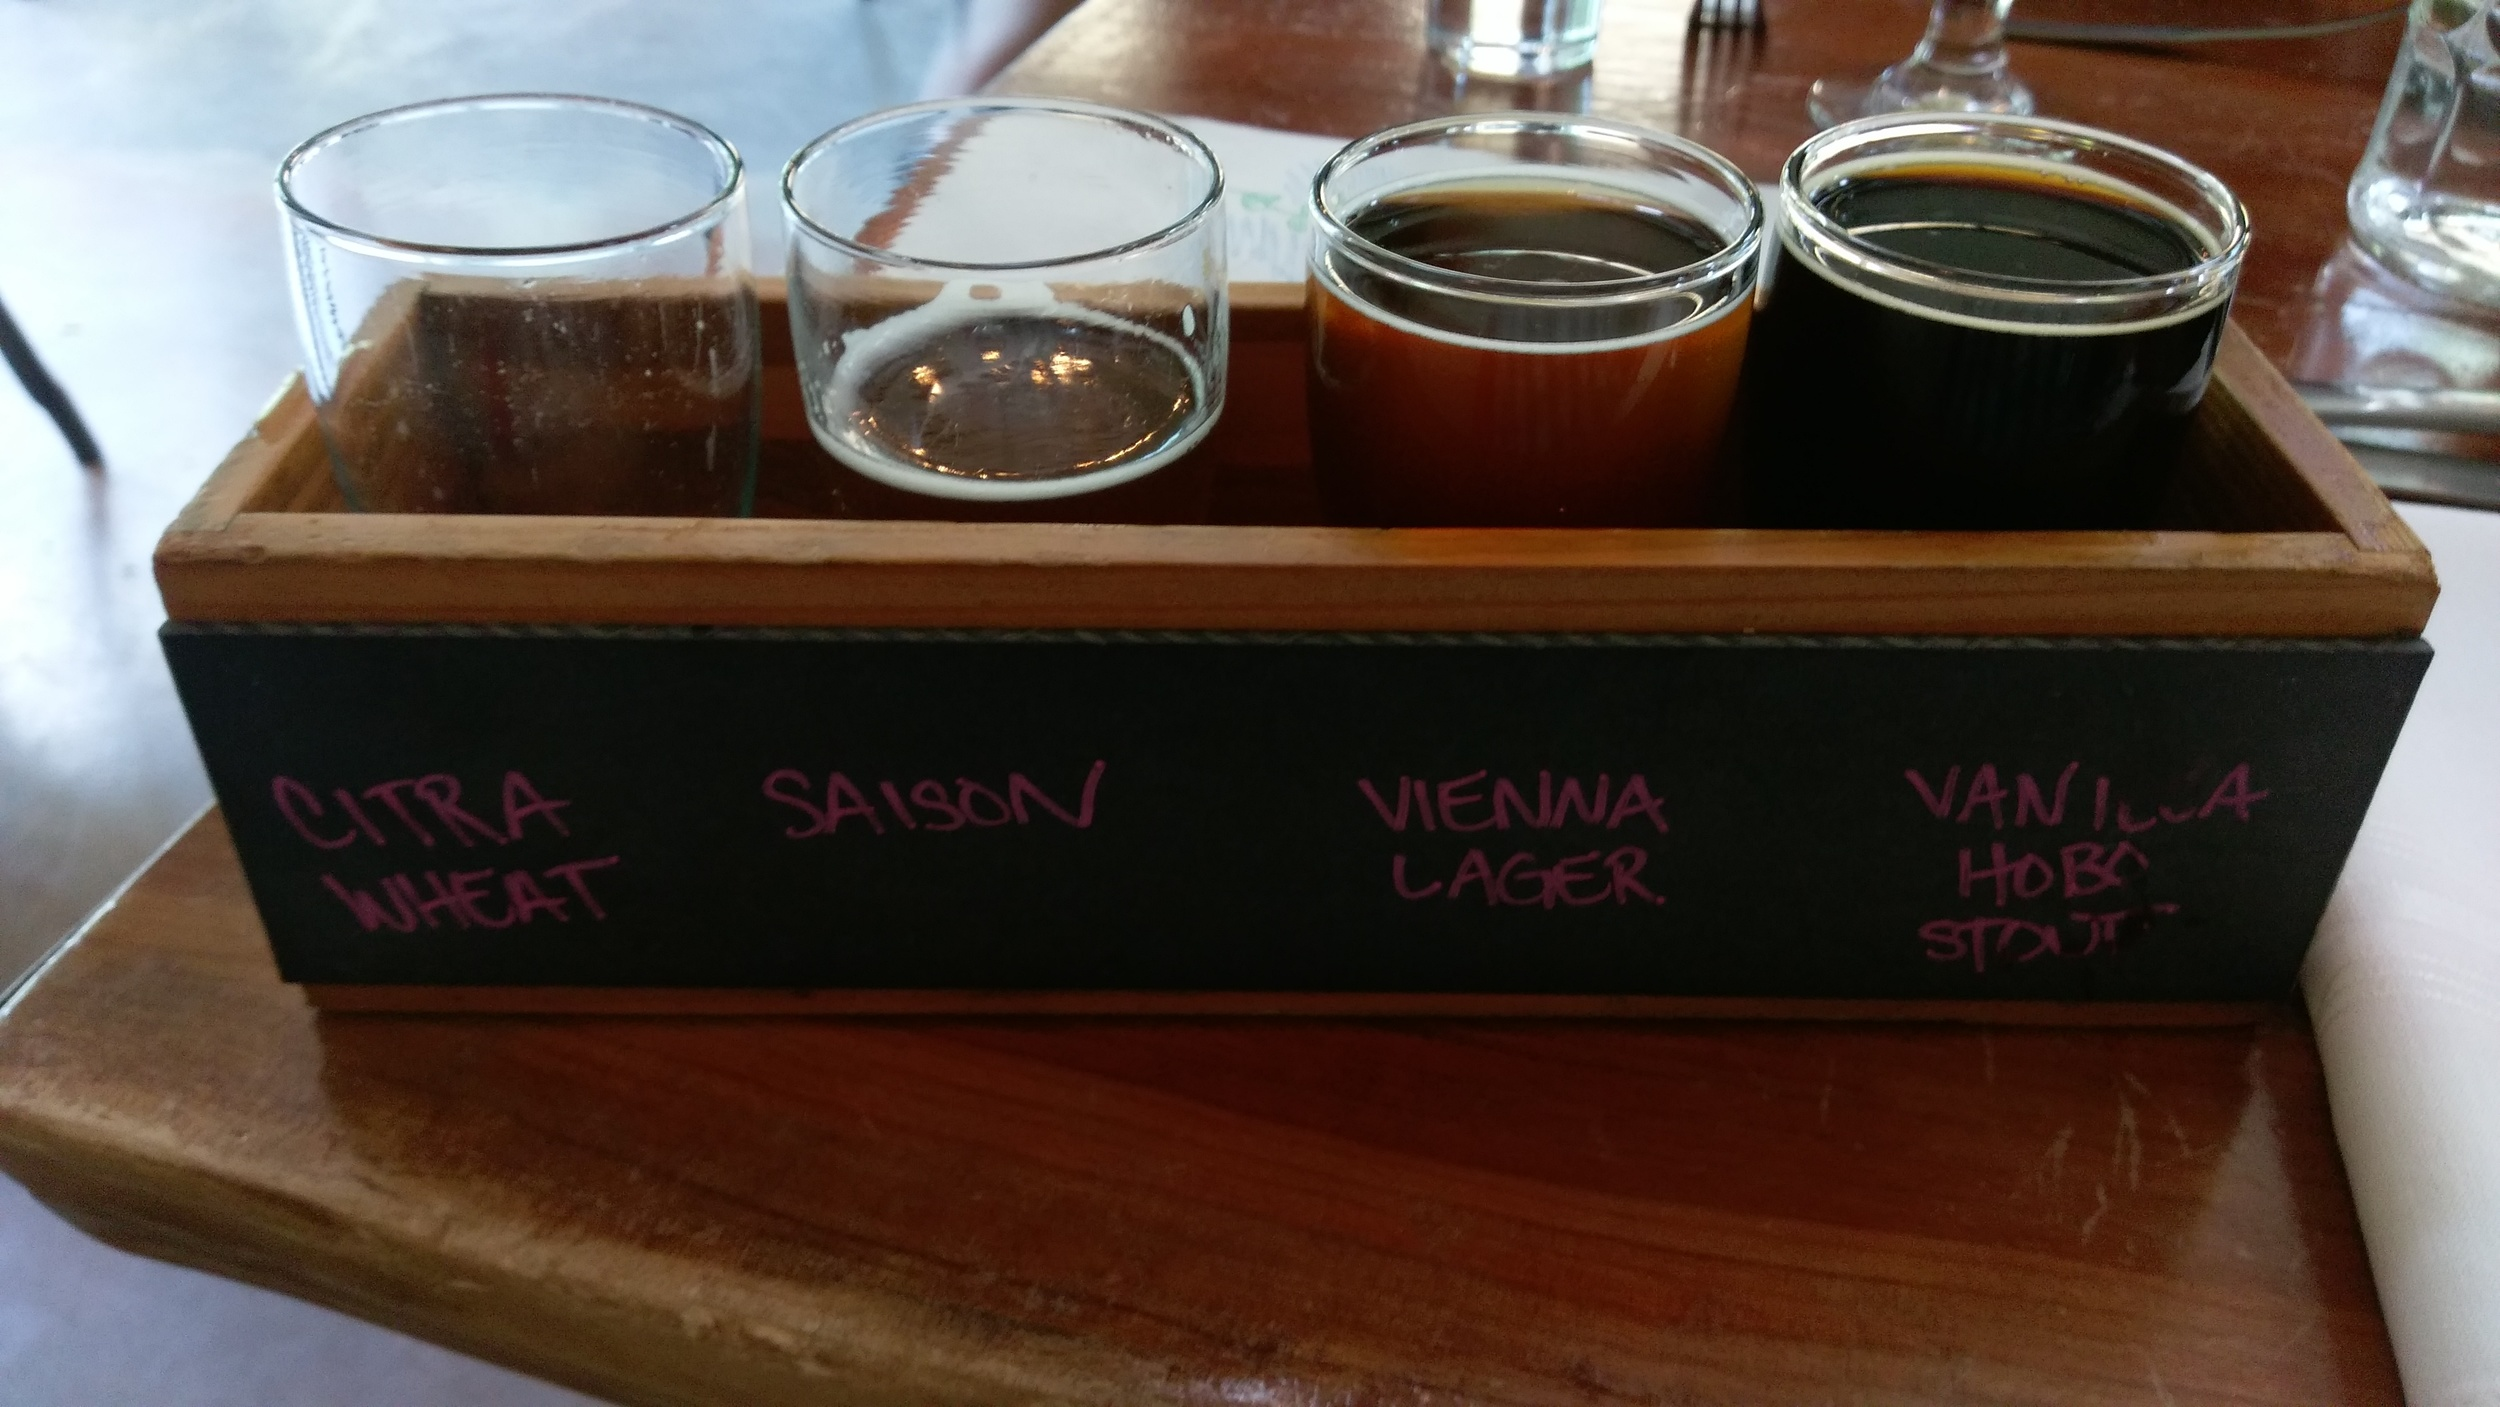 A nice beer selection provides a little something for everyone.